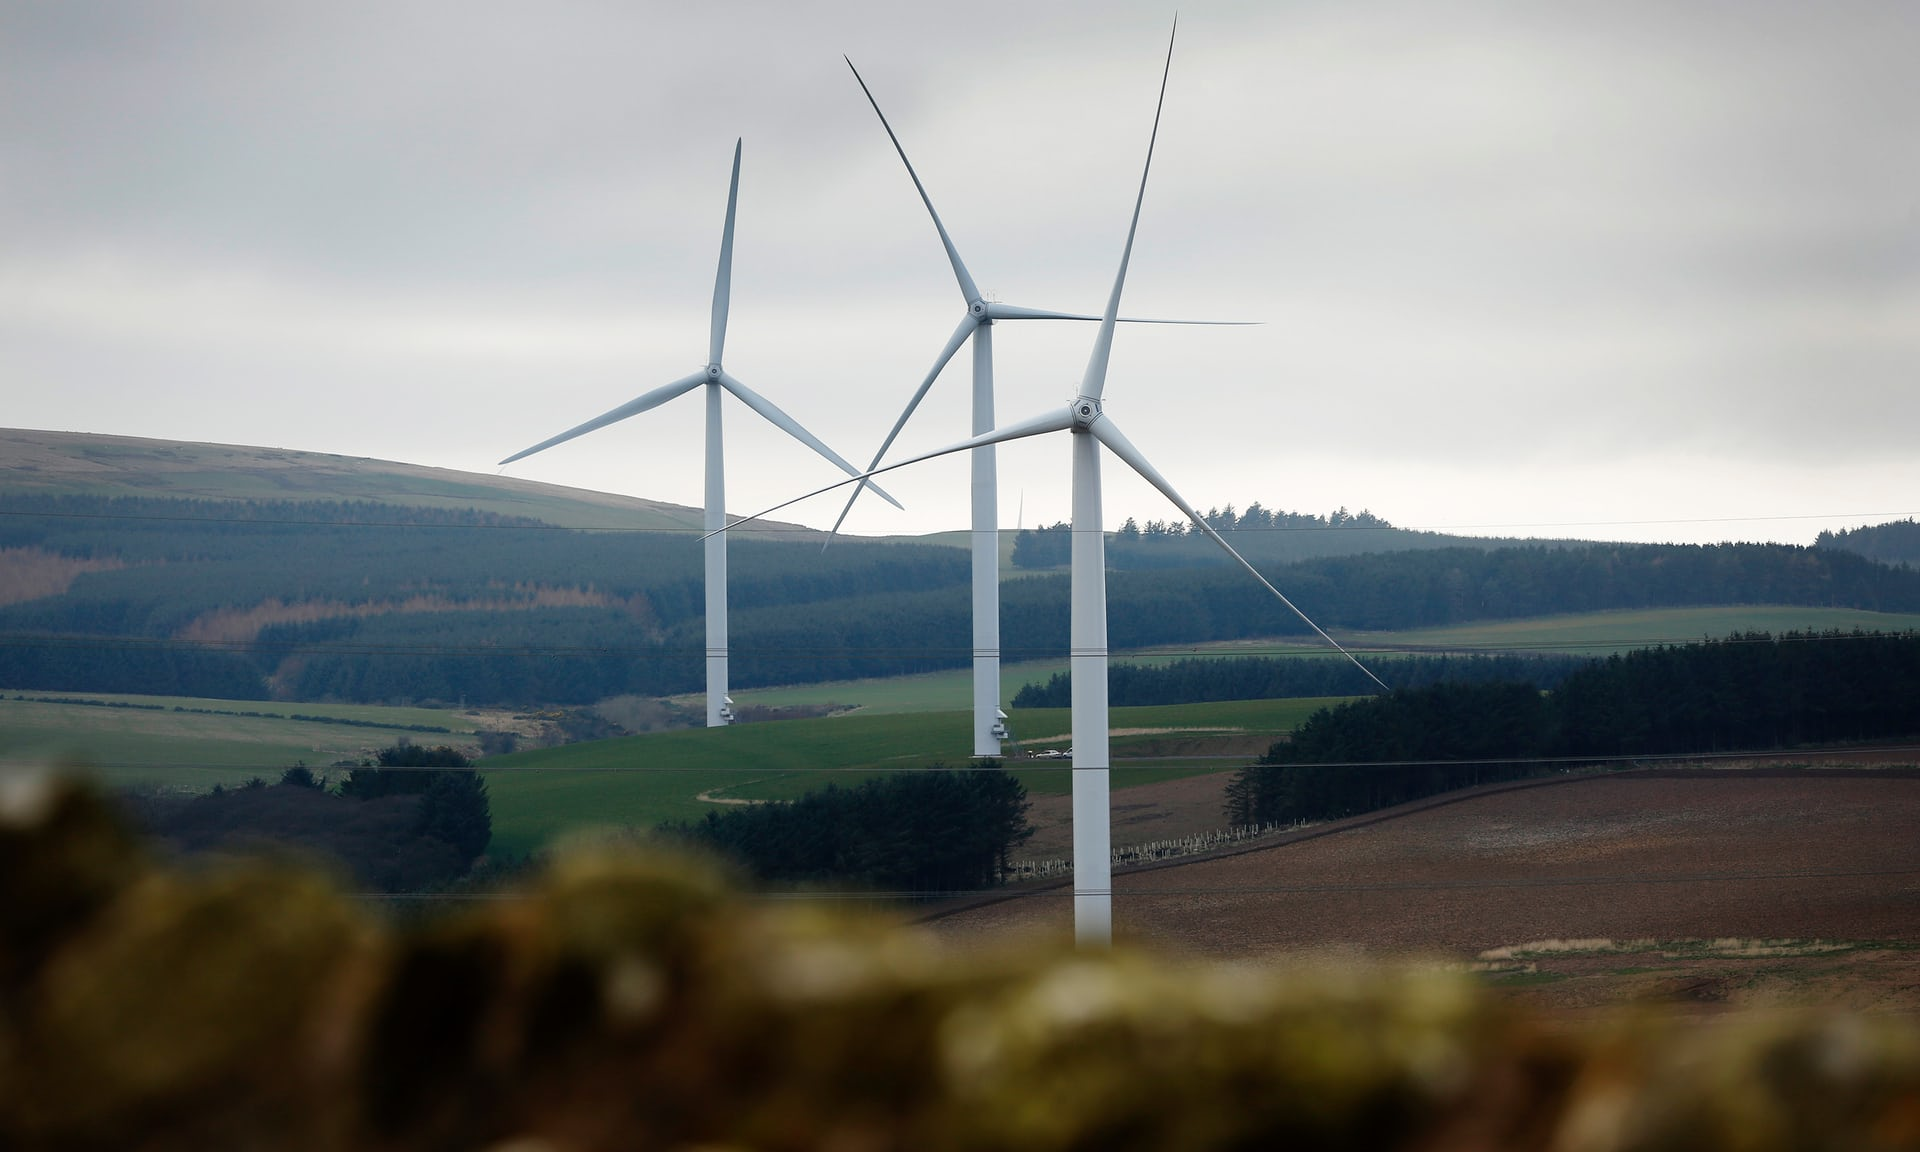 No subsidies for green power projects before 2025, says UK Treasury